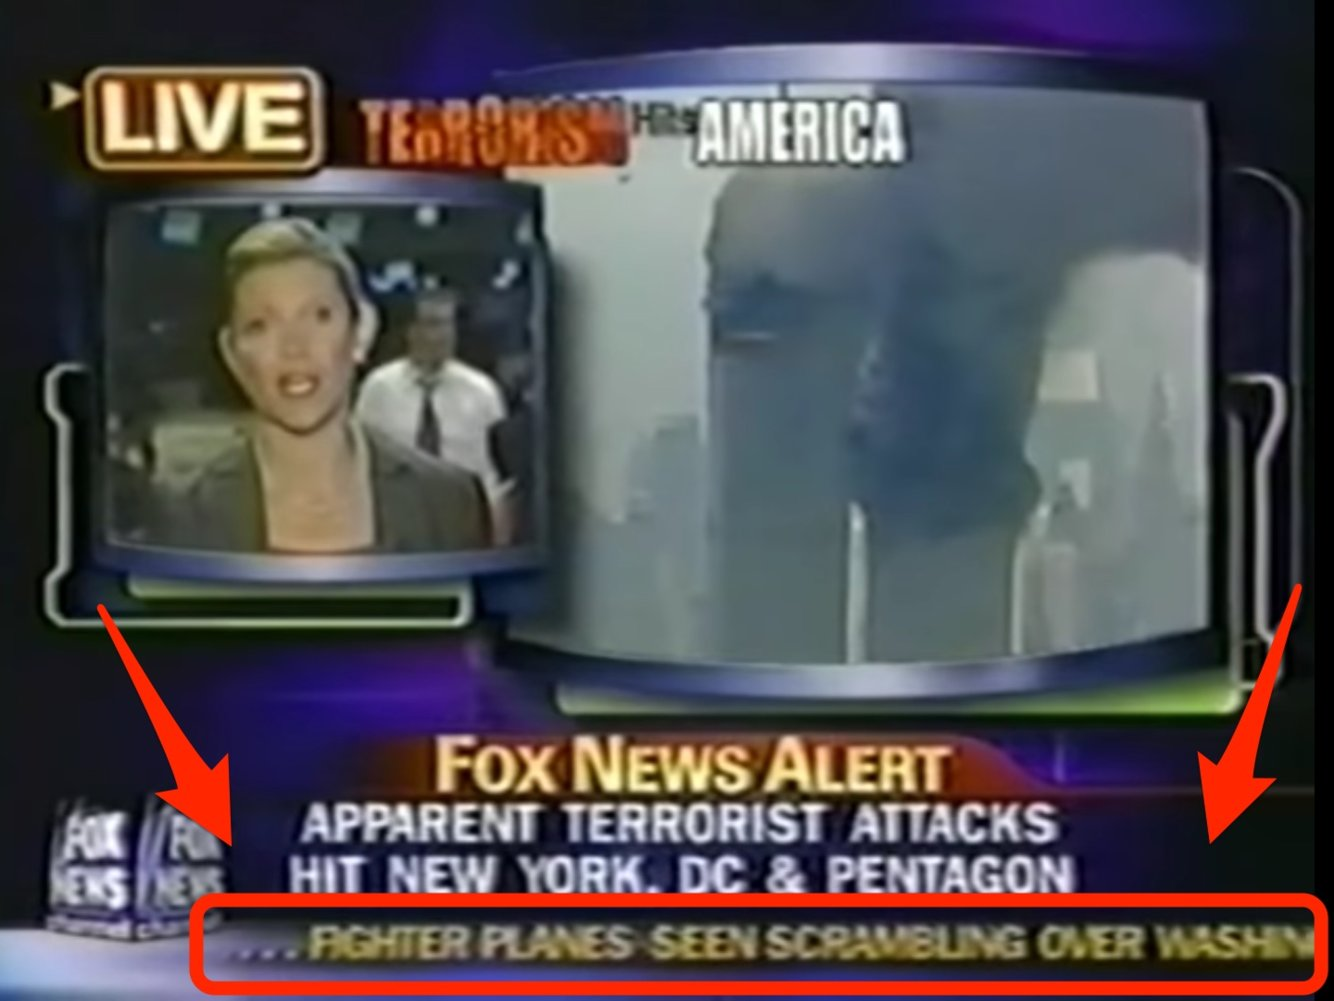 9-11 Attack Aired on FOX Channel Months Before Sept. 11, 2001